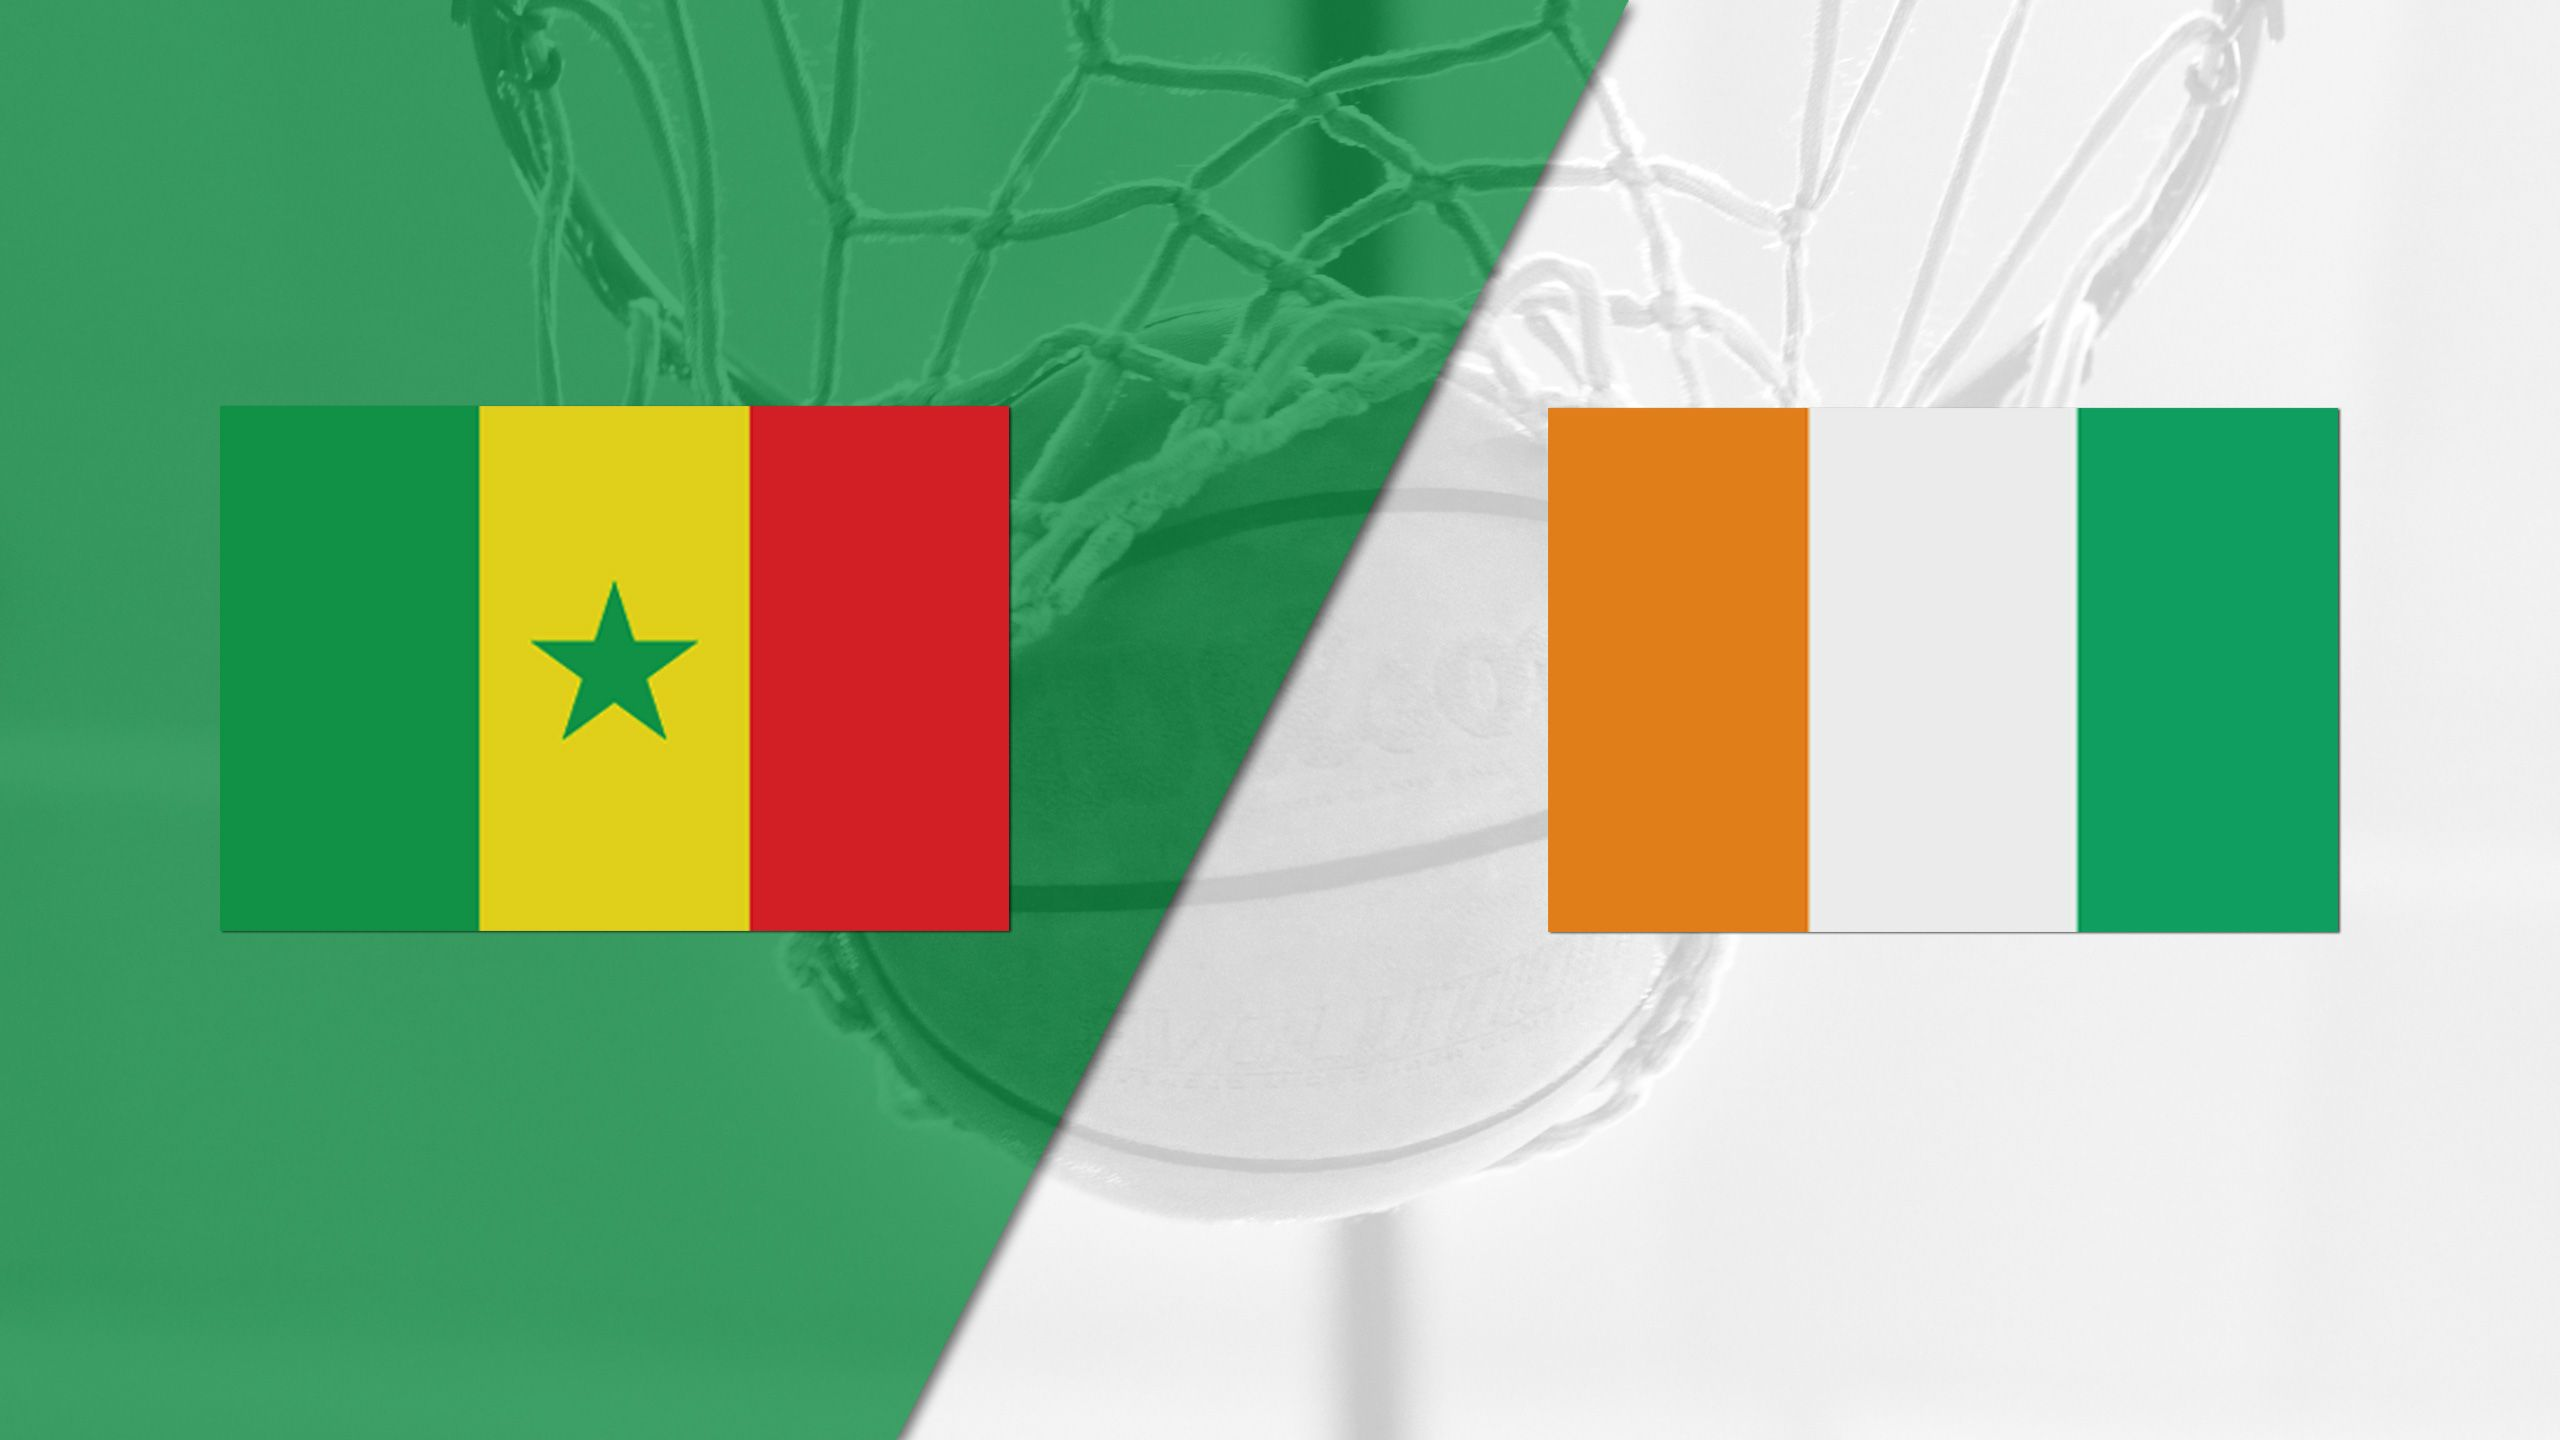 Senegal vs. Cote D'Ivoire (FIBA World Cup 2019 Qualifier)